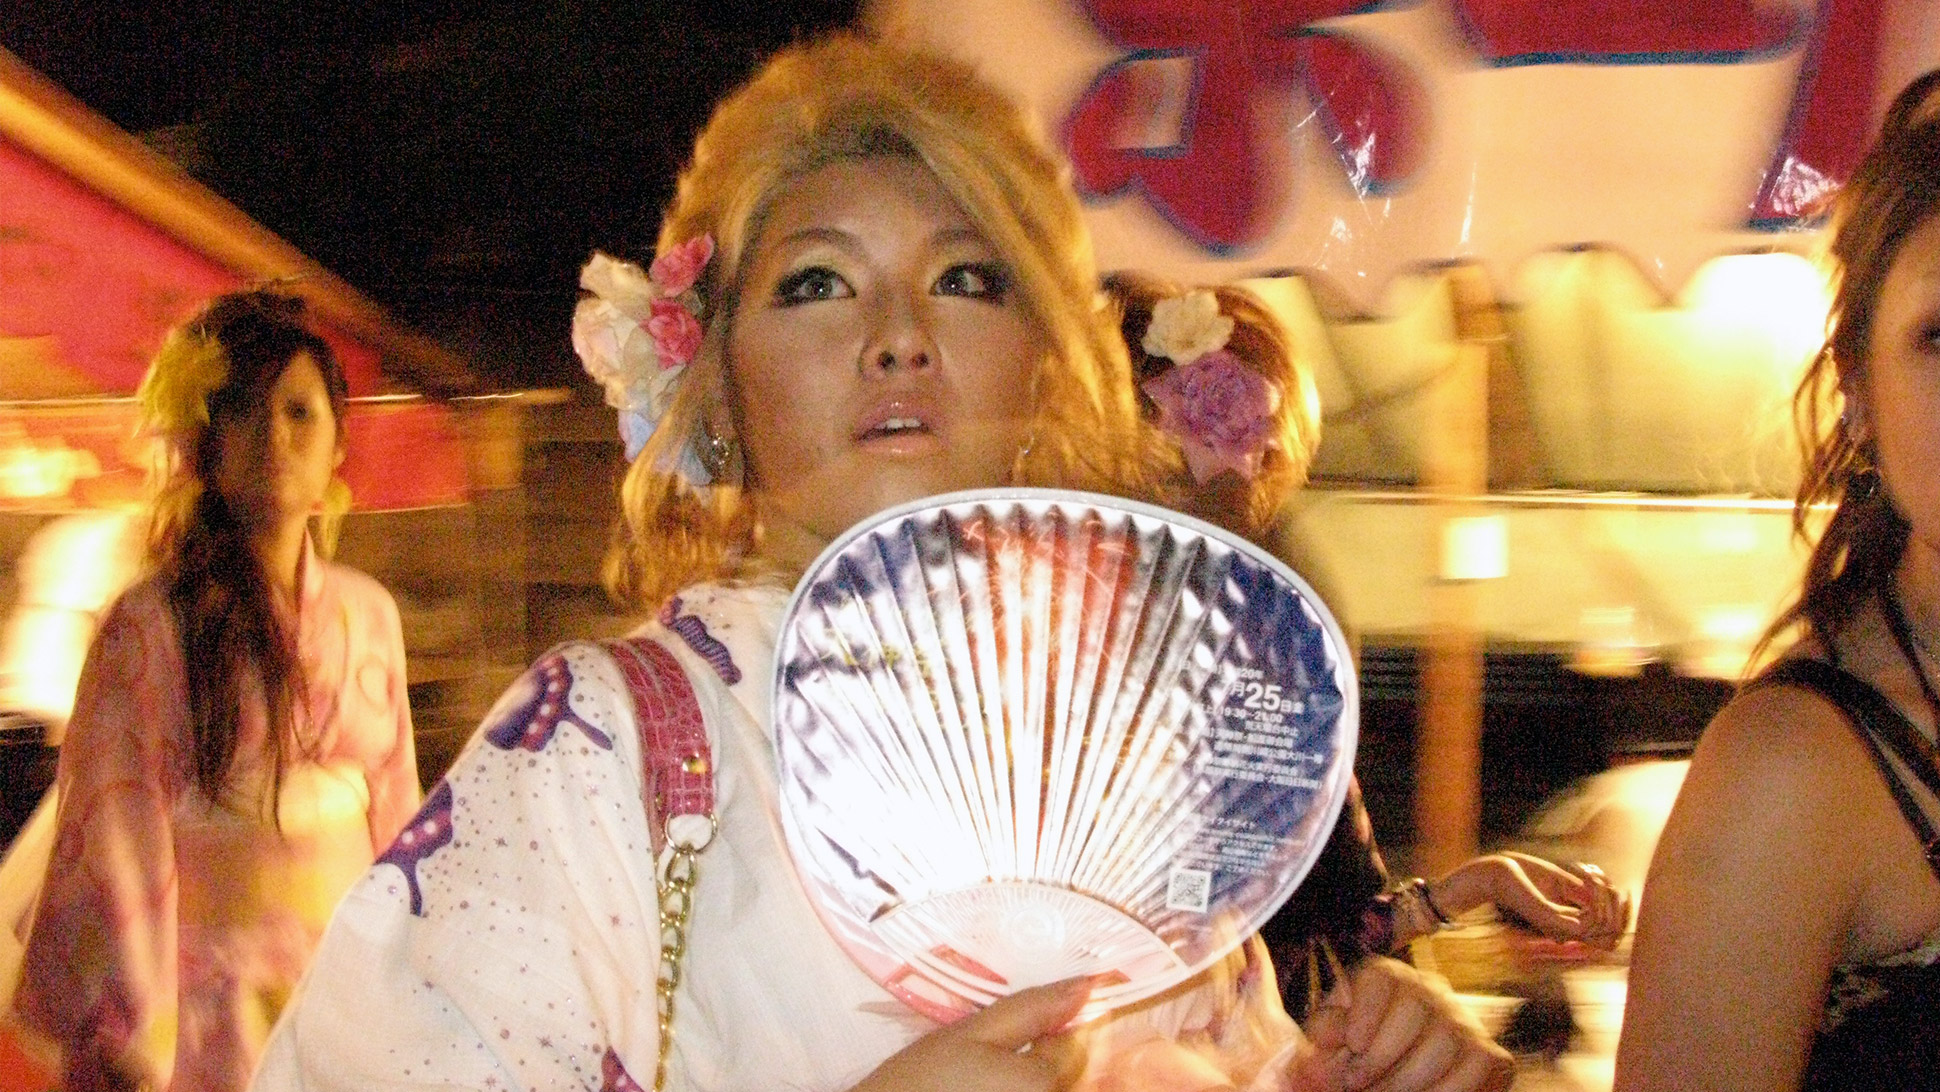 Tenjin Matsuri in Osaka, a summertime Carnival of sorts replete with kimonos, portable shrines, fireworks, and fan-waving nubiles with $1,500 handbags.